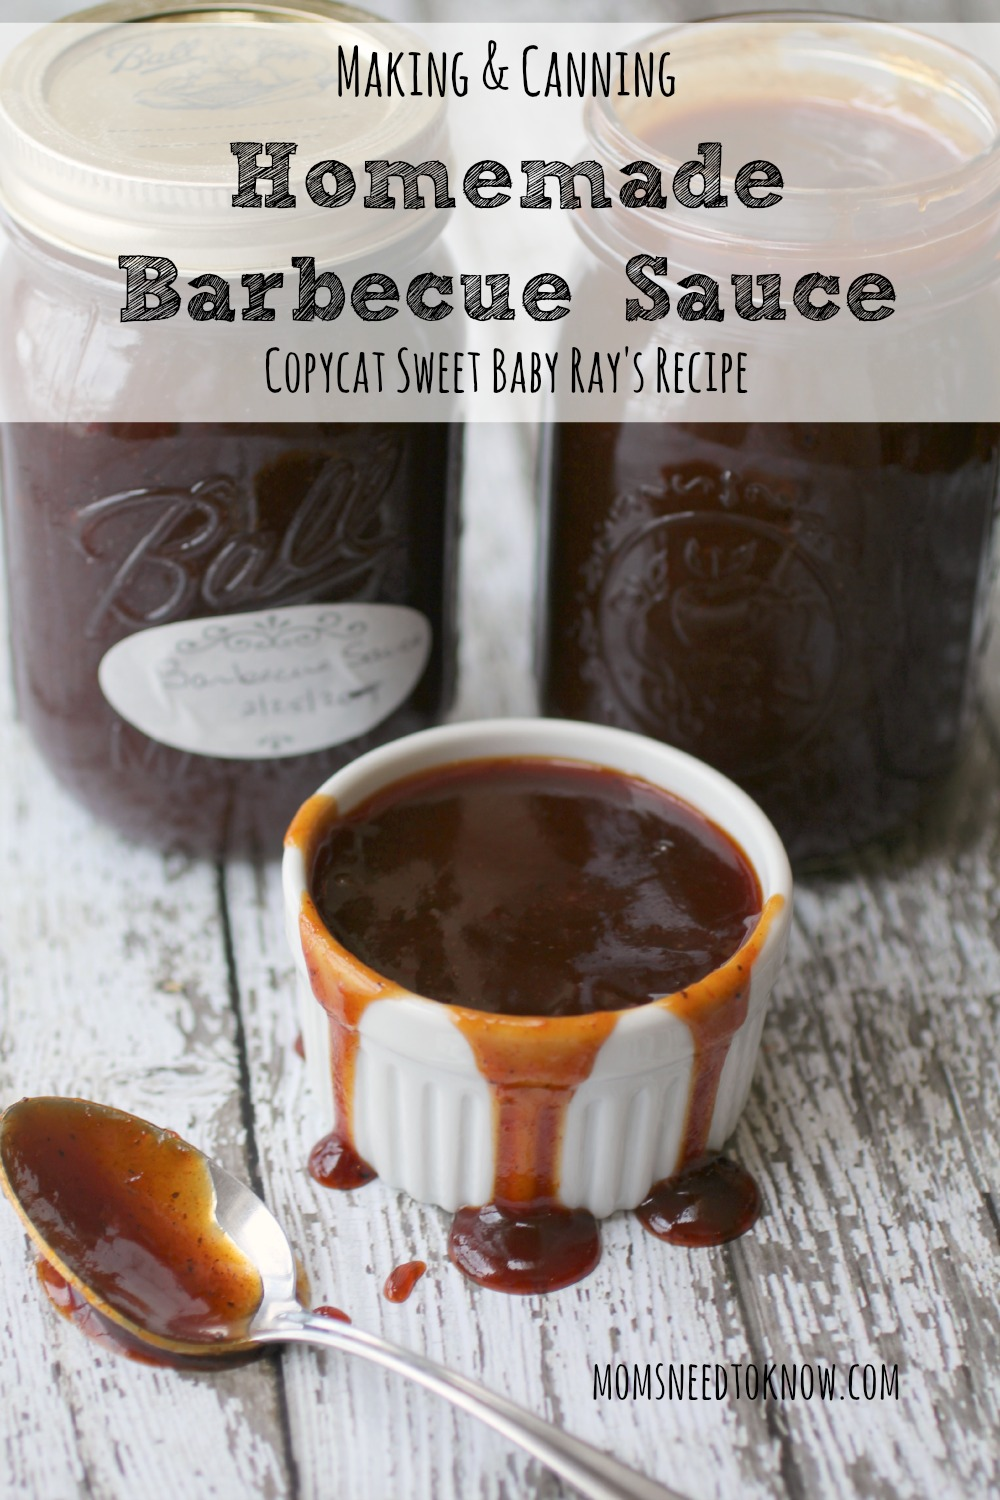 Making and Canning Homemade Barbecue Sauce Copycat Sweet Baby Rays Recipe